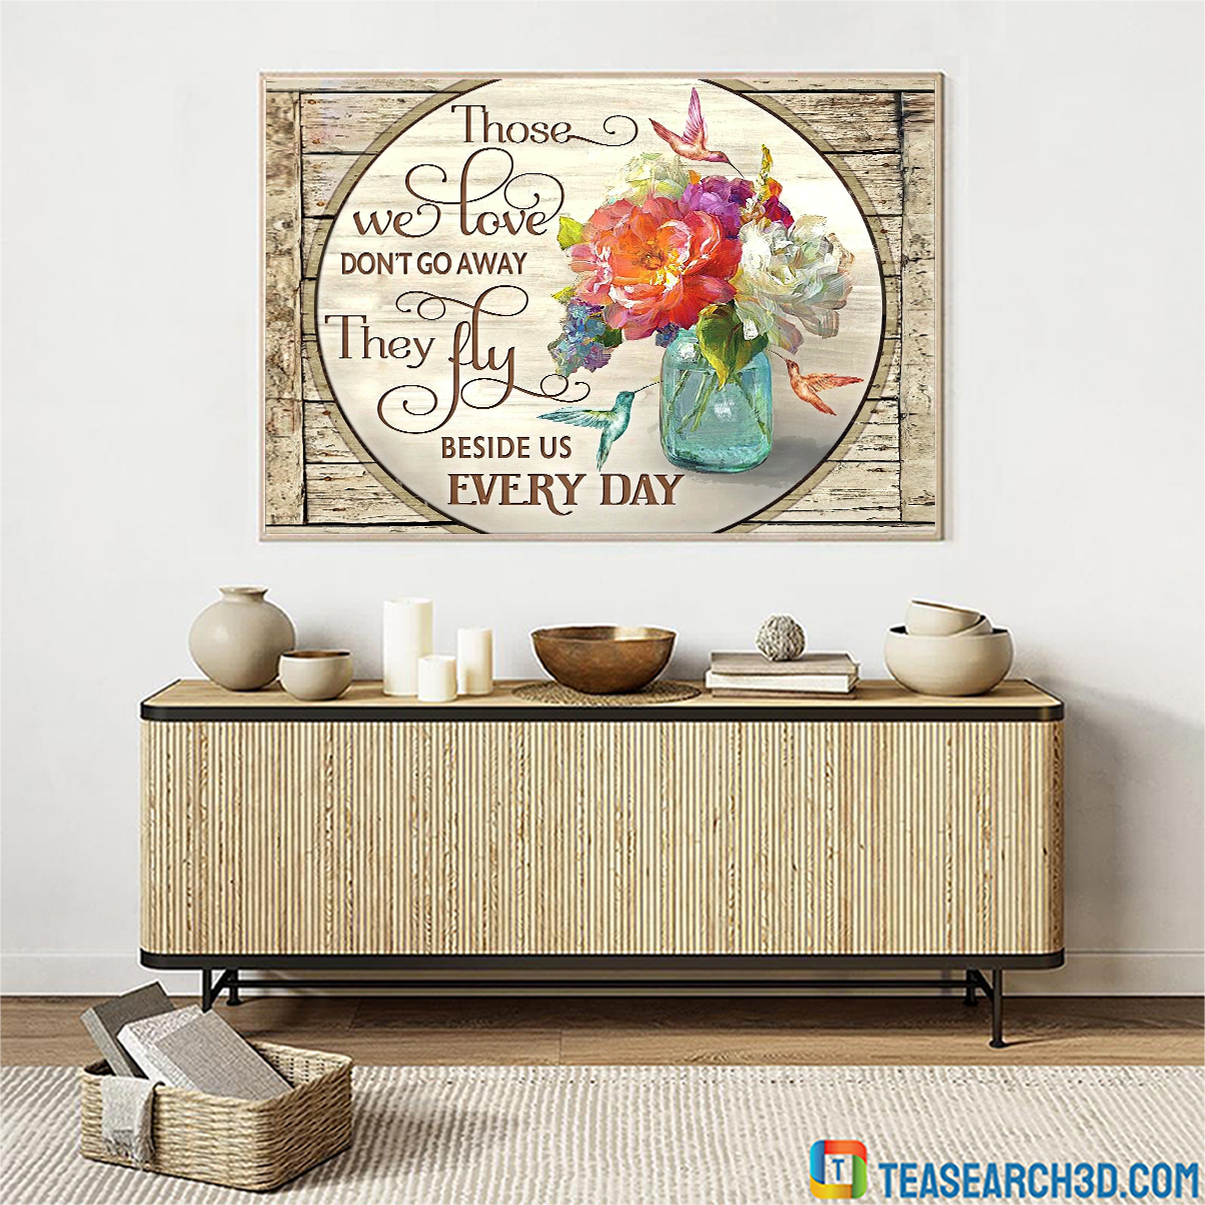 Hummingbird flowers those we love don't go away canvas 1